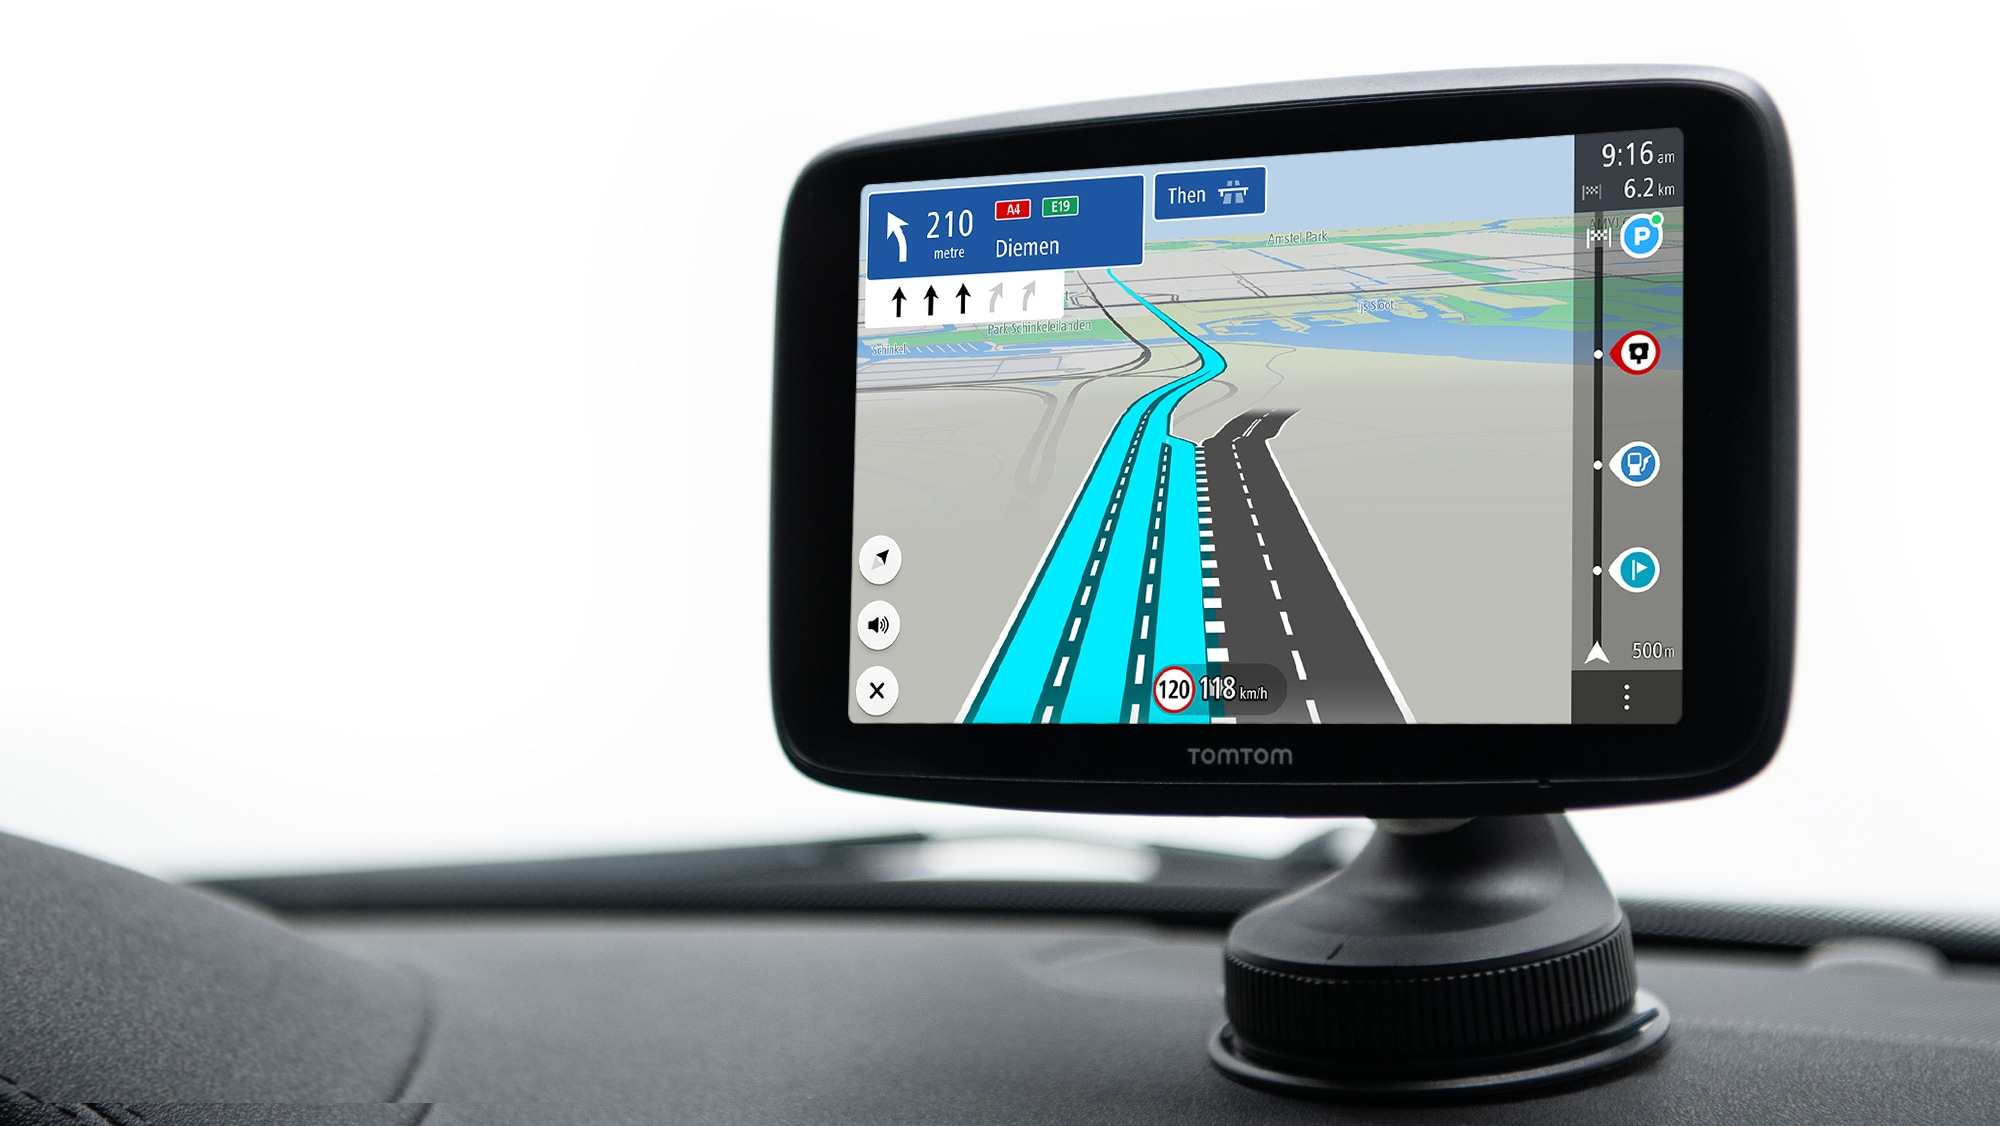 TomTom GO Series with better and brighter touchscreen, provides clear visibility on the navigation